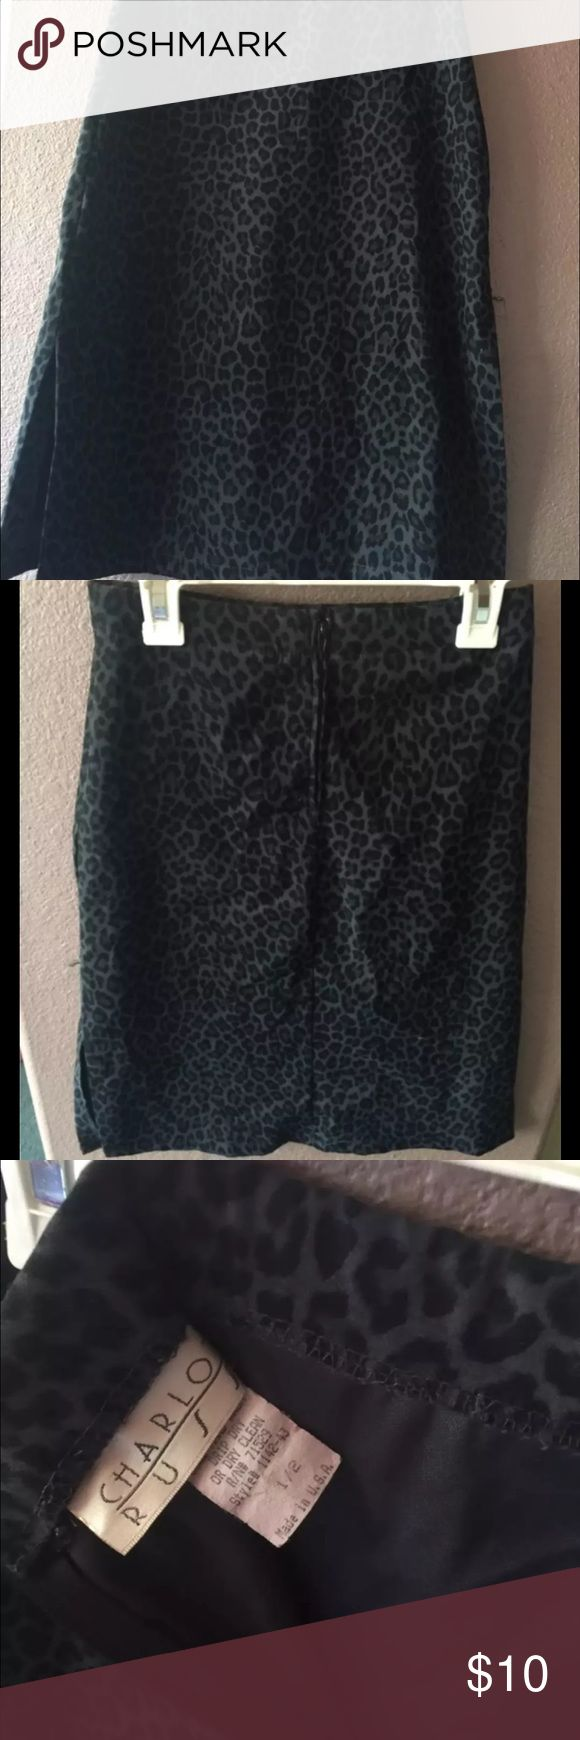 Cute Skirt!! Good for work or any business casual affair, gently worn pencil skirt. Has slits on both sides. Base color is charcoal gray with black animal print. Charlotte Ruse brand size 1/2. Bundle and save. Thank you for looking 🌸 Skirts Pencil